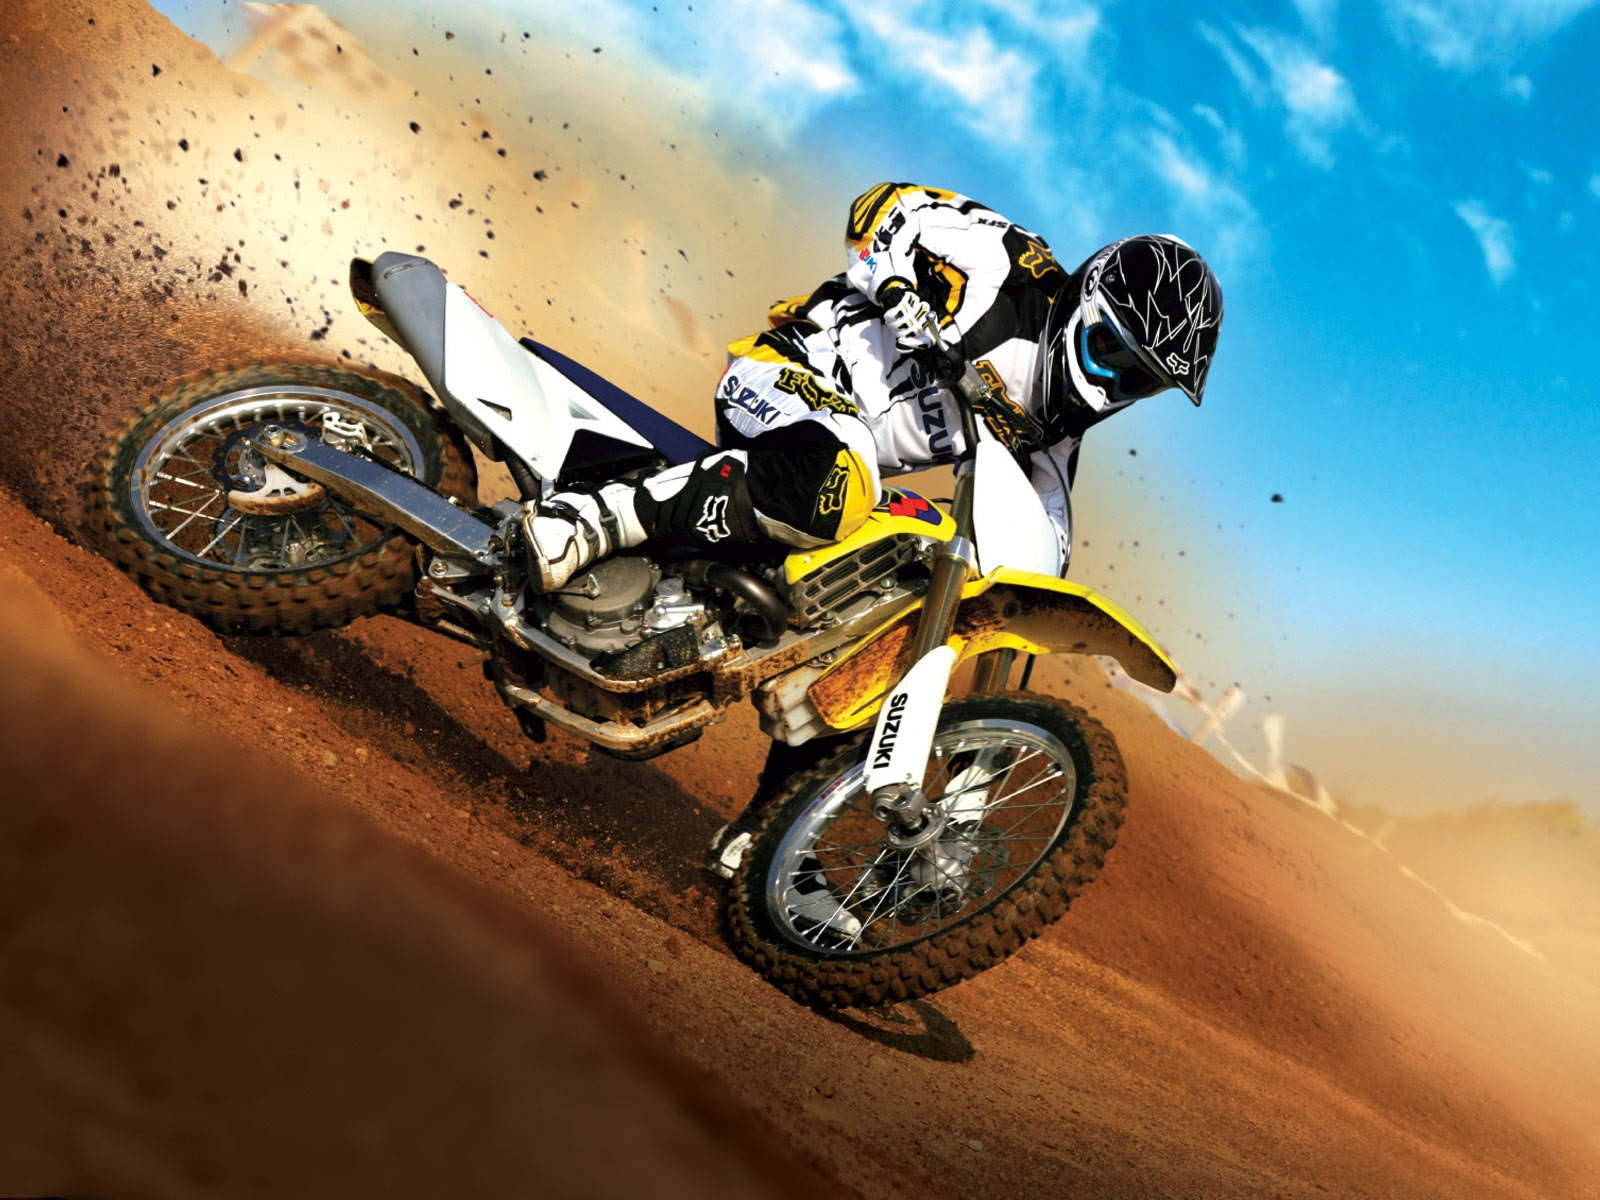 Suzuki motorcycle race 1600x1200 wallpaper